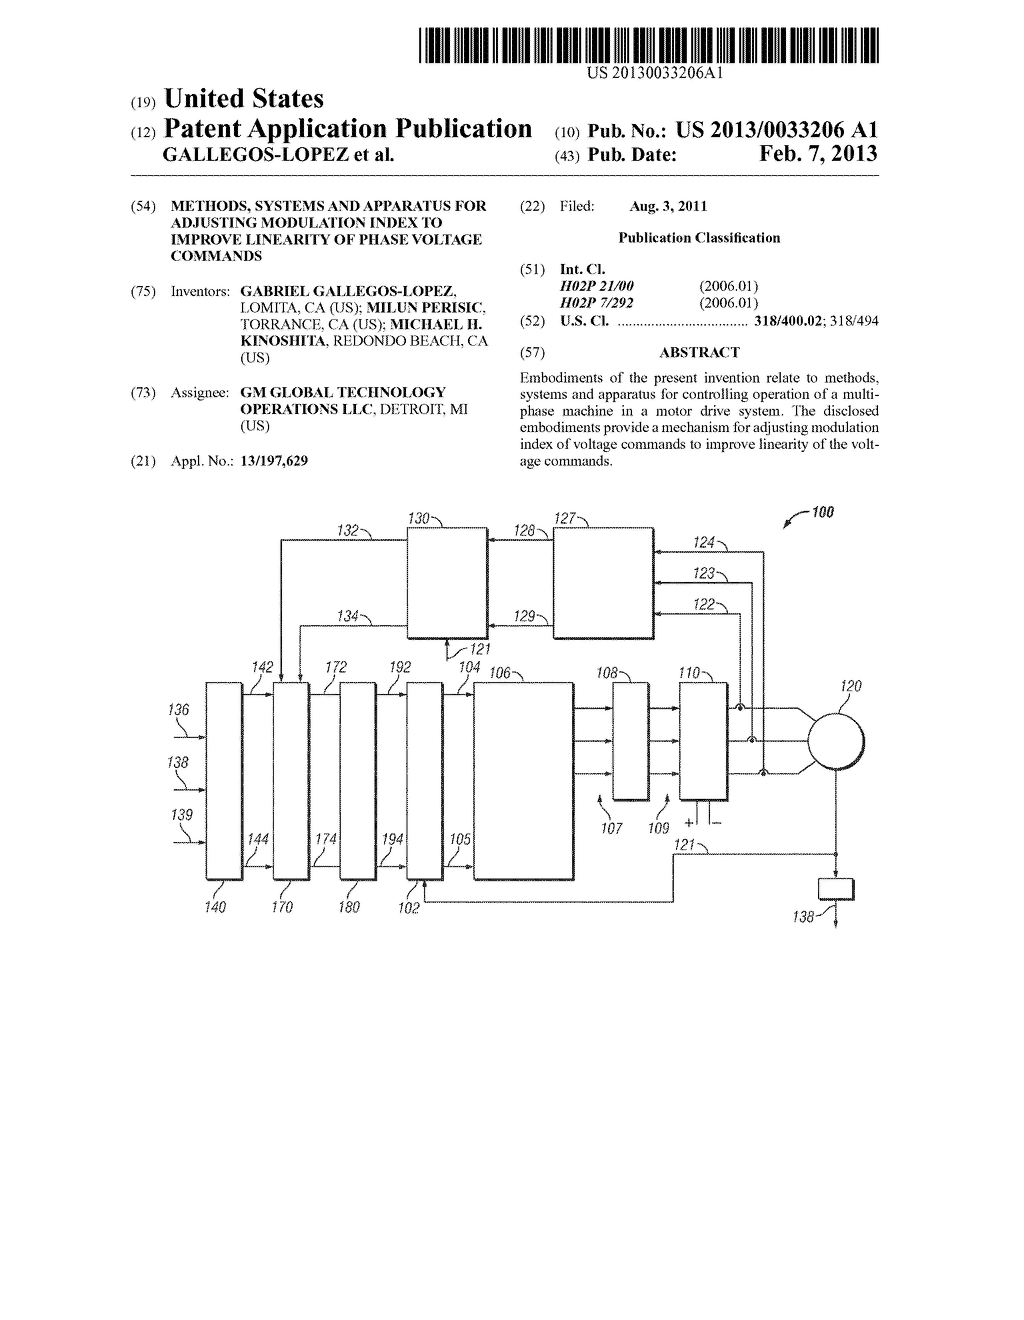 METHODS, SYSTEMS AND APPARATUS FOR ADJUSTING MODULATION INDEX TO IMPROVE     LINEARITY OF PHASE VOLTAGE COMMANDS - diagram, schematic, and image 01